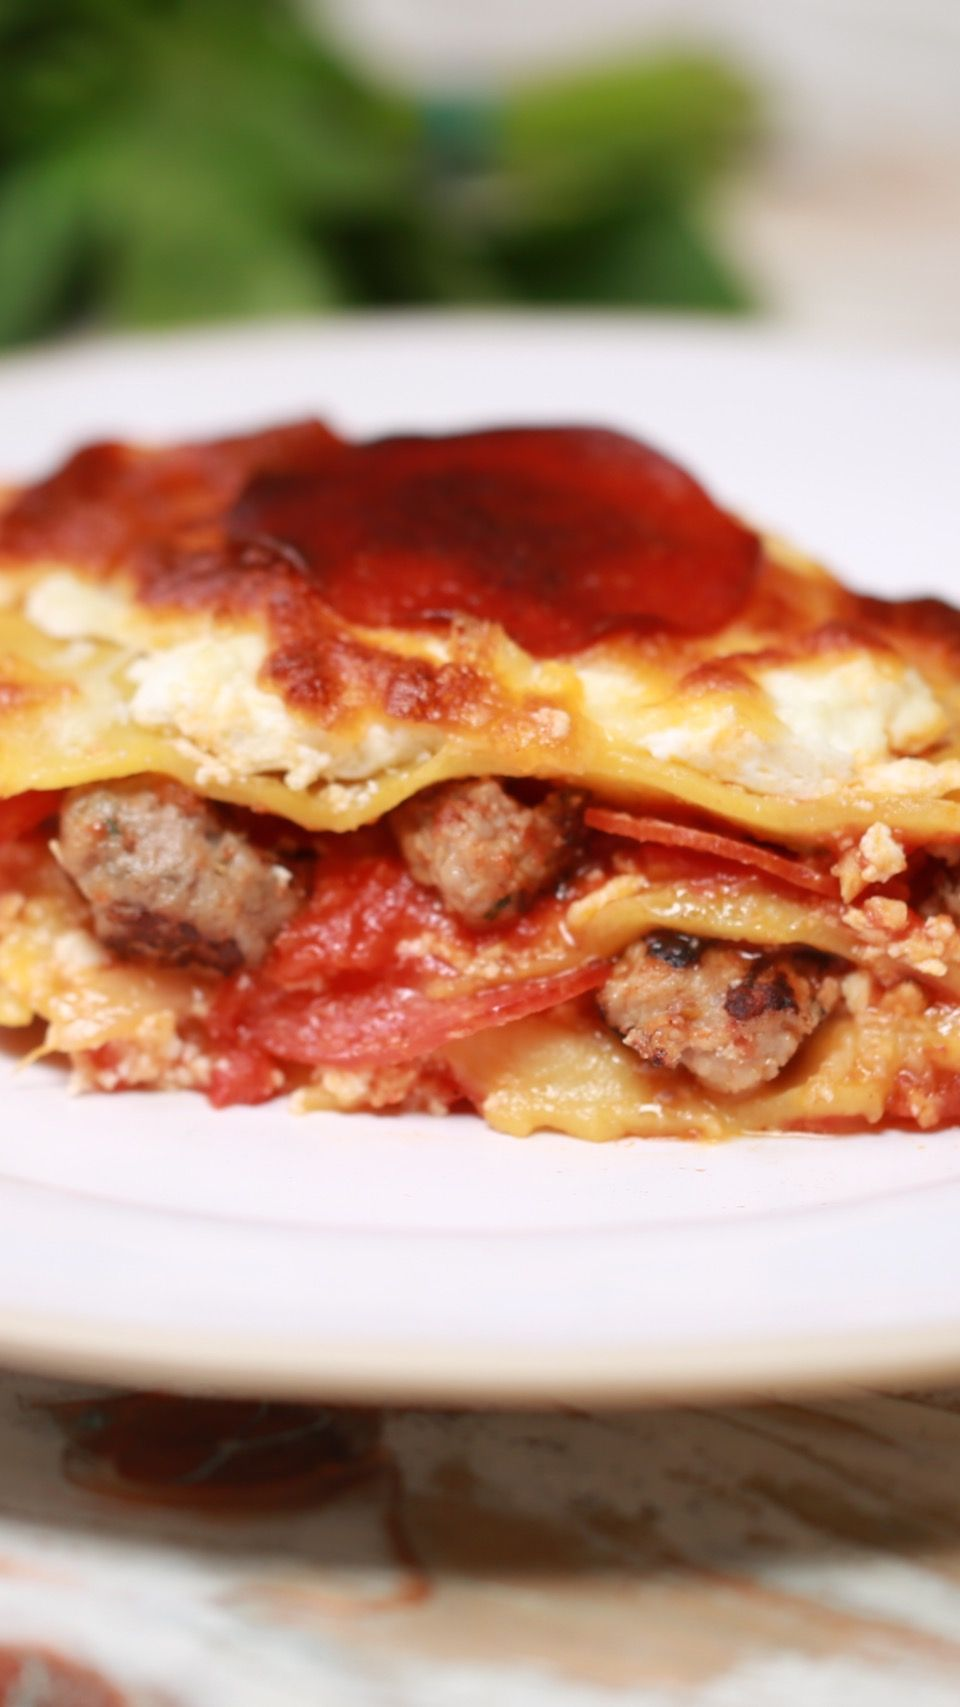 A pizza? A lasagna? Or, as we like to call it: carb heaven.